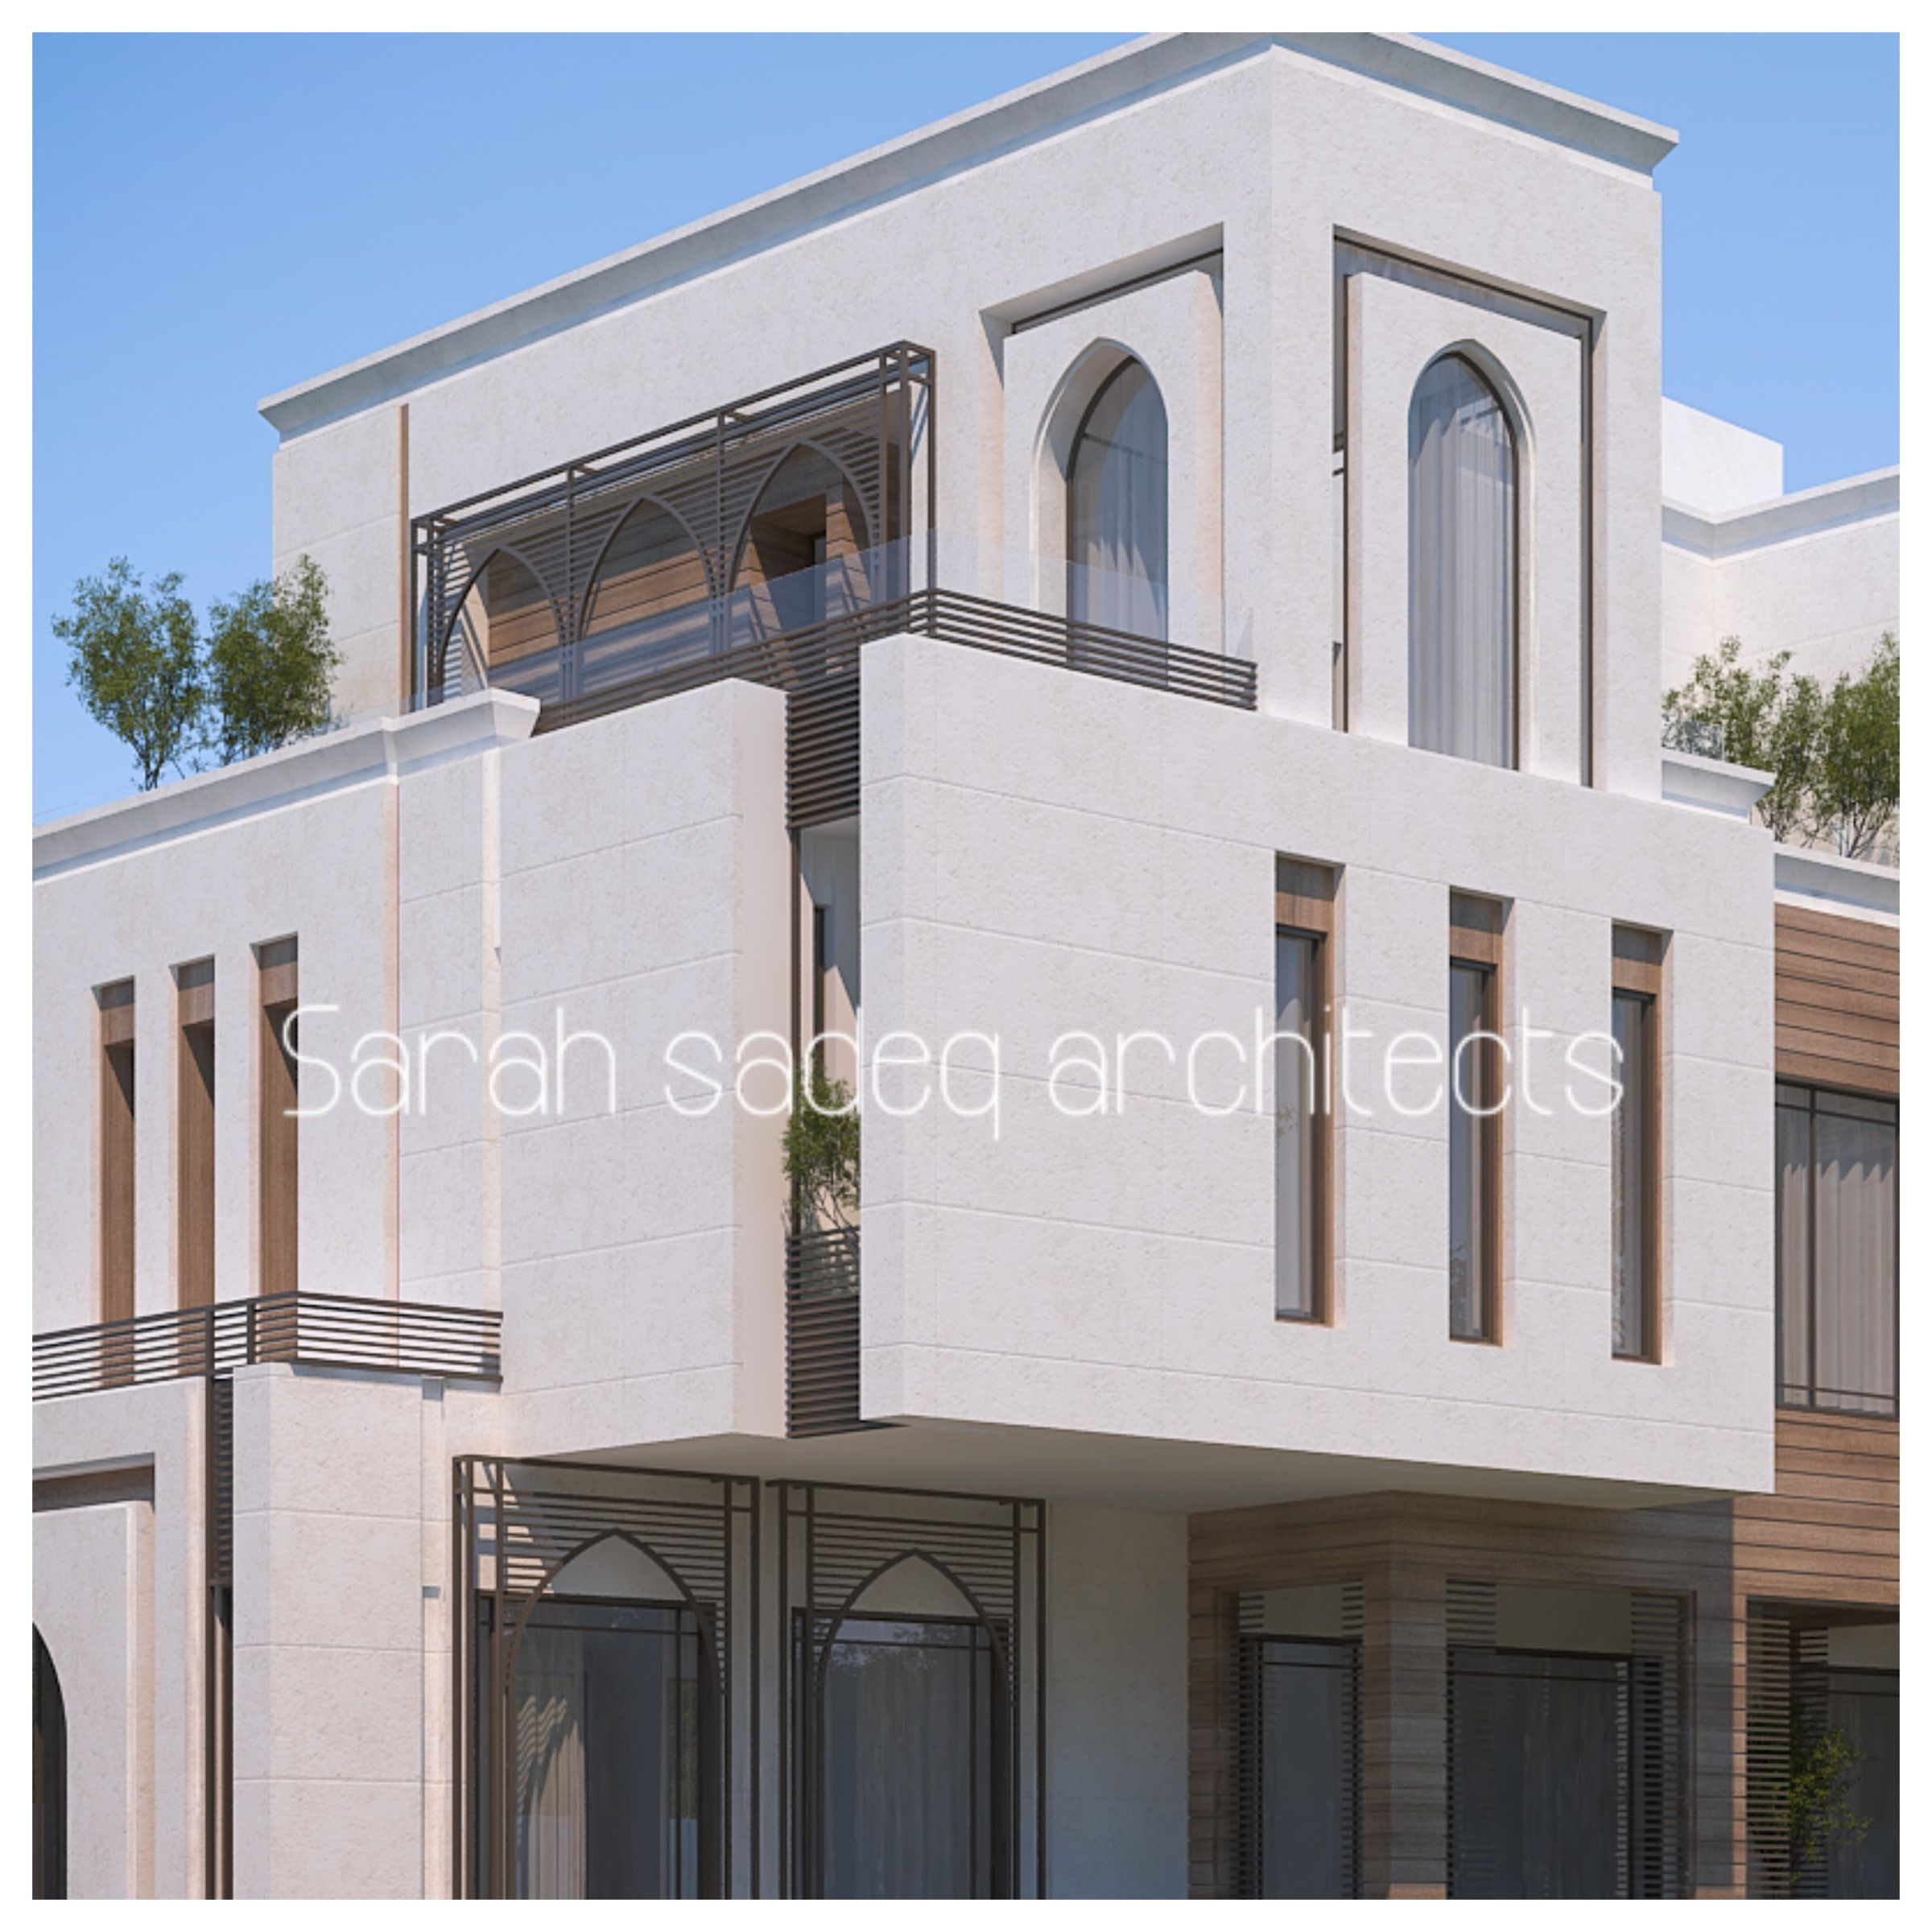 pleasing islamic design house usa. Private villa  kuwait Sarah sadeq architects Facade HouseHouse ExteriorsChalet DesignHouse DesignIslamic sarah